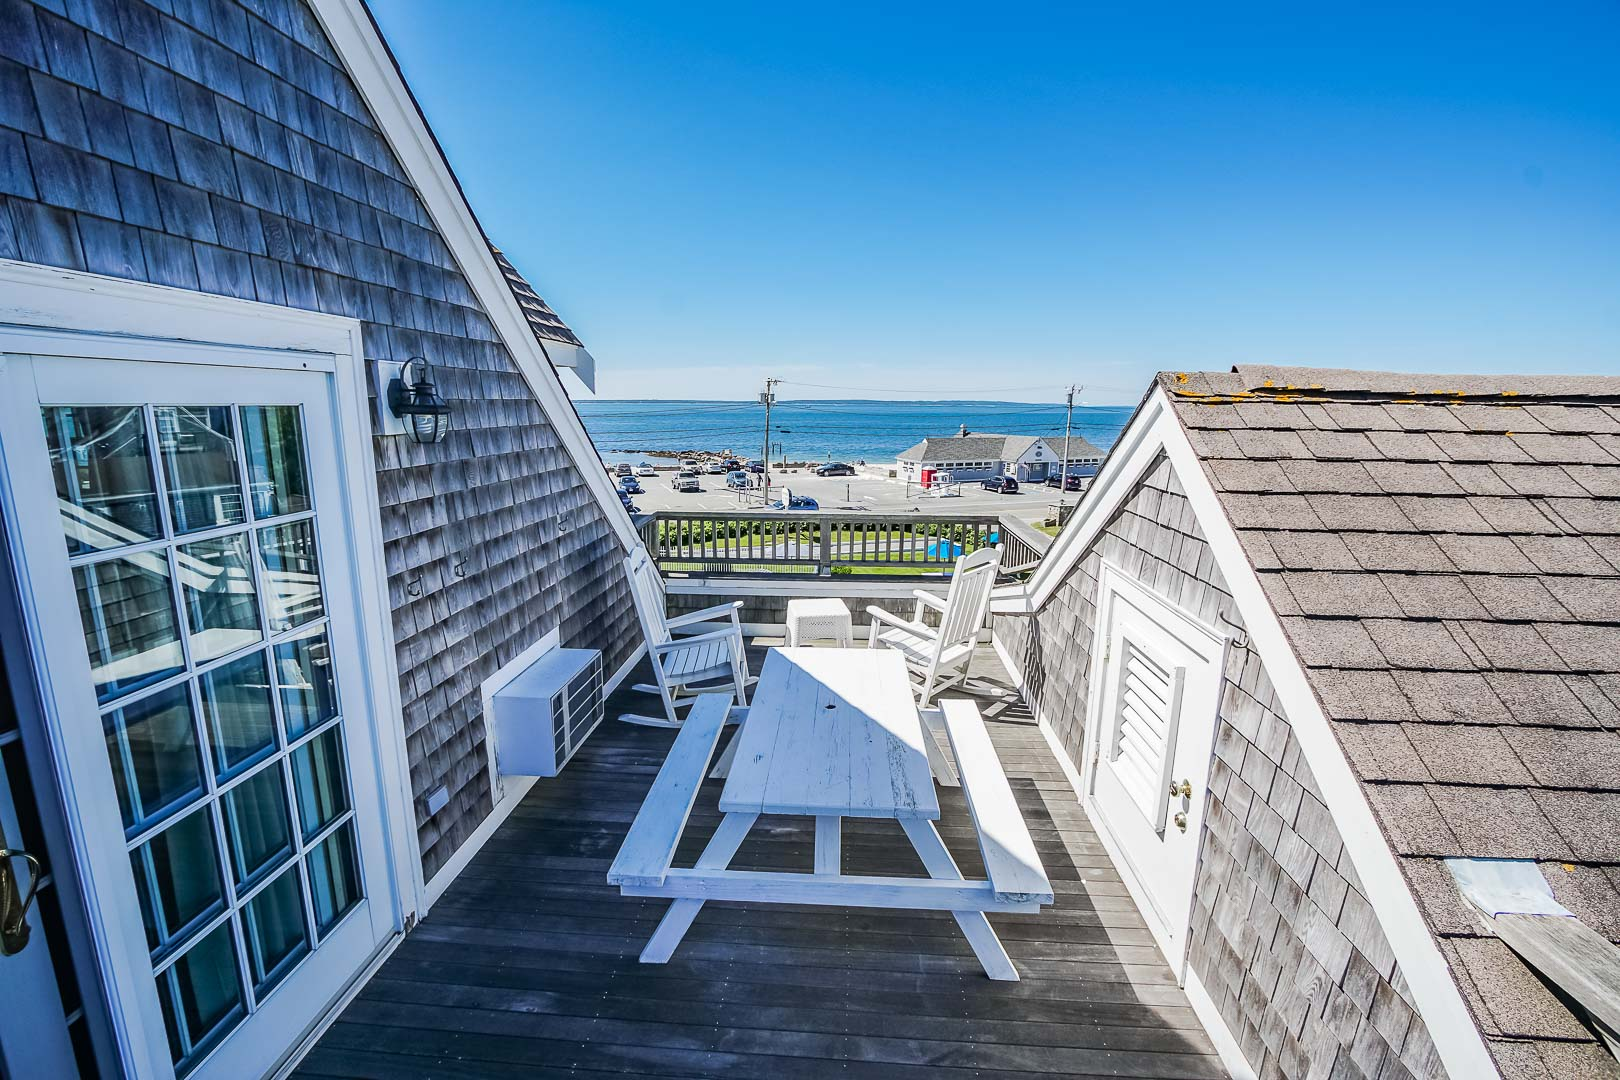 A serene beach view from the balcony at VRI's Beachside Village Resort in Massachusetts.